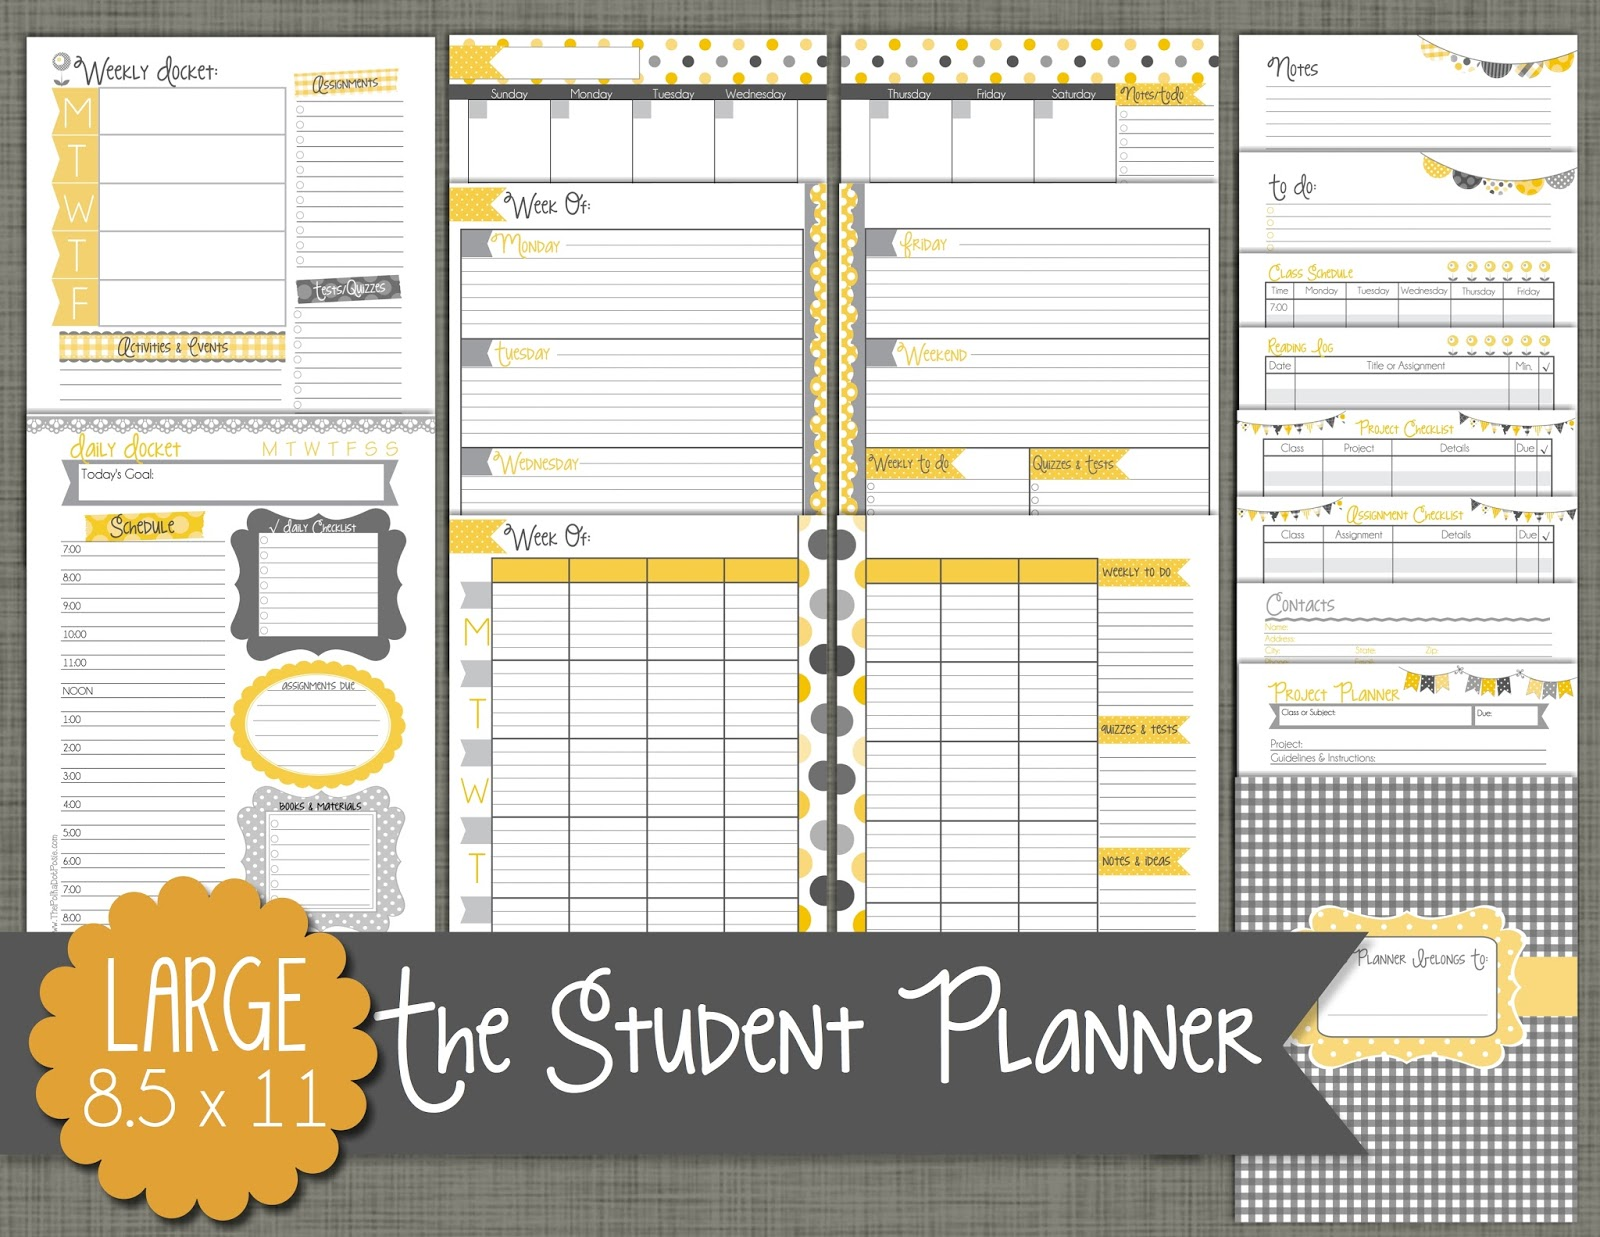 The Polka Dot Posie: Our New Student Planners are Here!